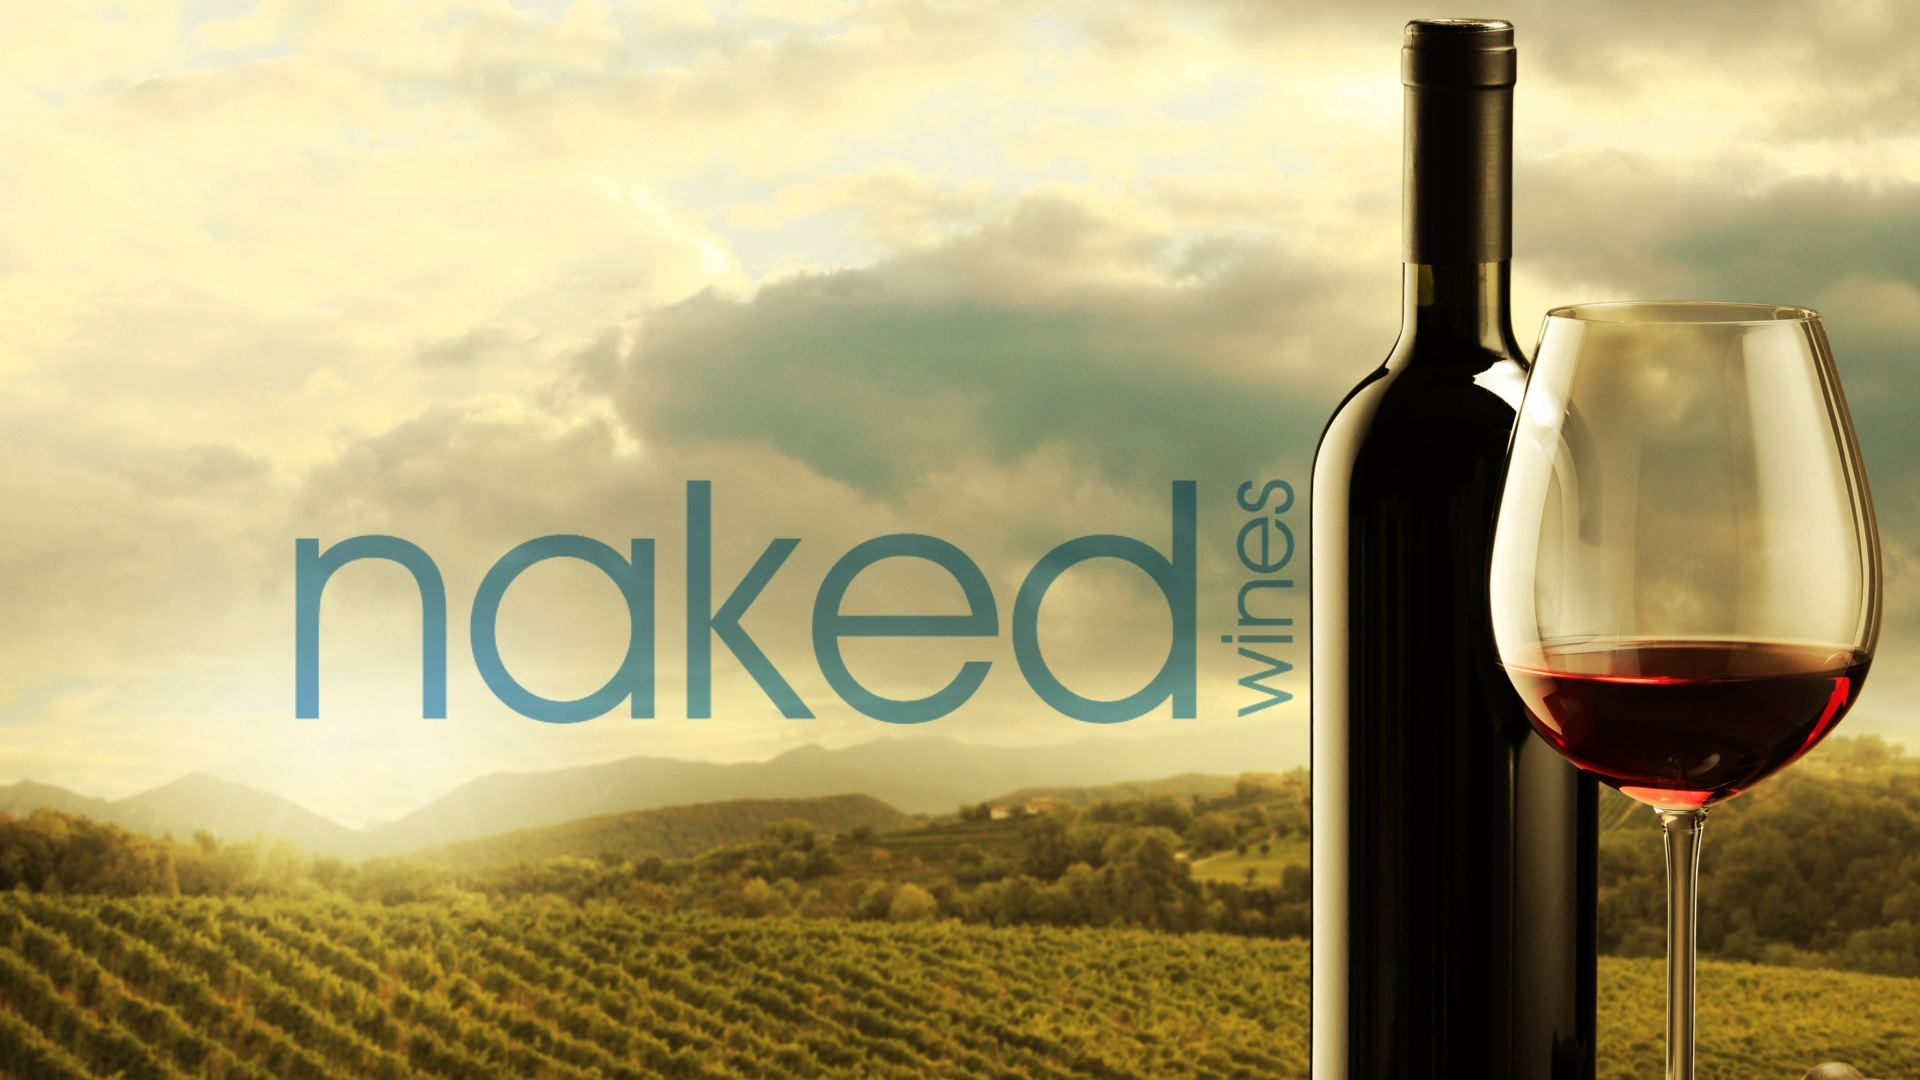 Naked Wines implement community chat to enhance online customer experience